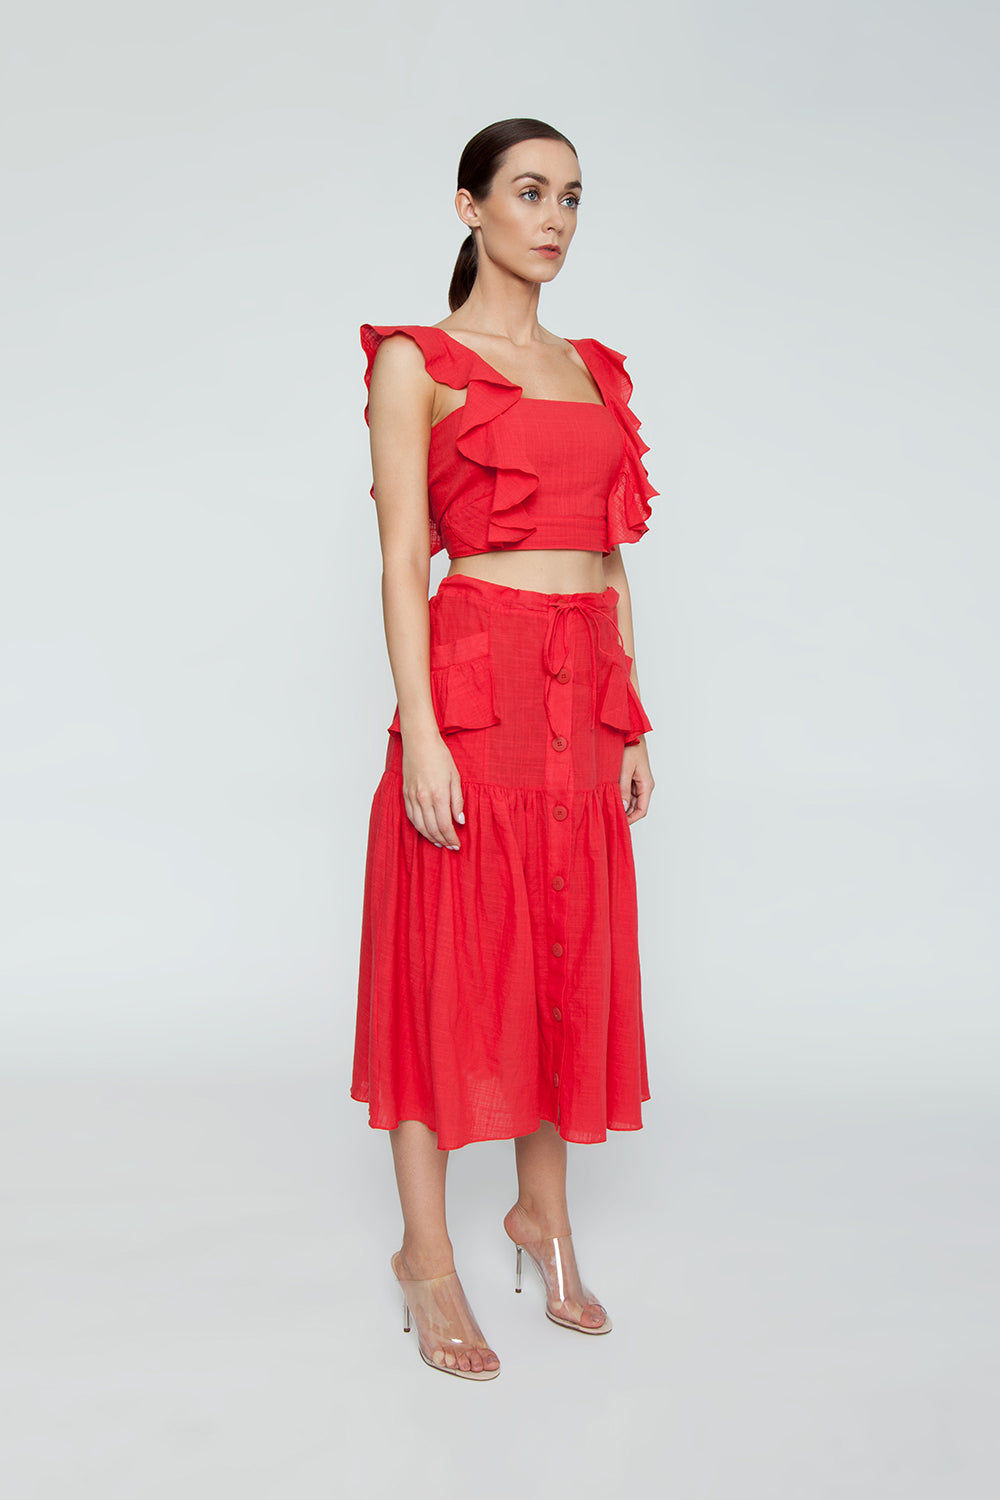 CLUBE BOSSA Fara High Waist Midi Skirt - Pepper Red Skirt | Pepper Red| Clube Bossa Fara High Waist Midi Skirt - Pepper Red. Features:  Midi red skirt Mid rise Drawstring waist Side pockets Front button fastening Ruched detail Loose fit Side View